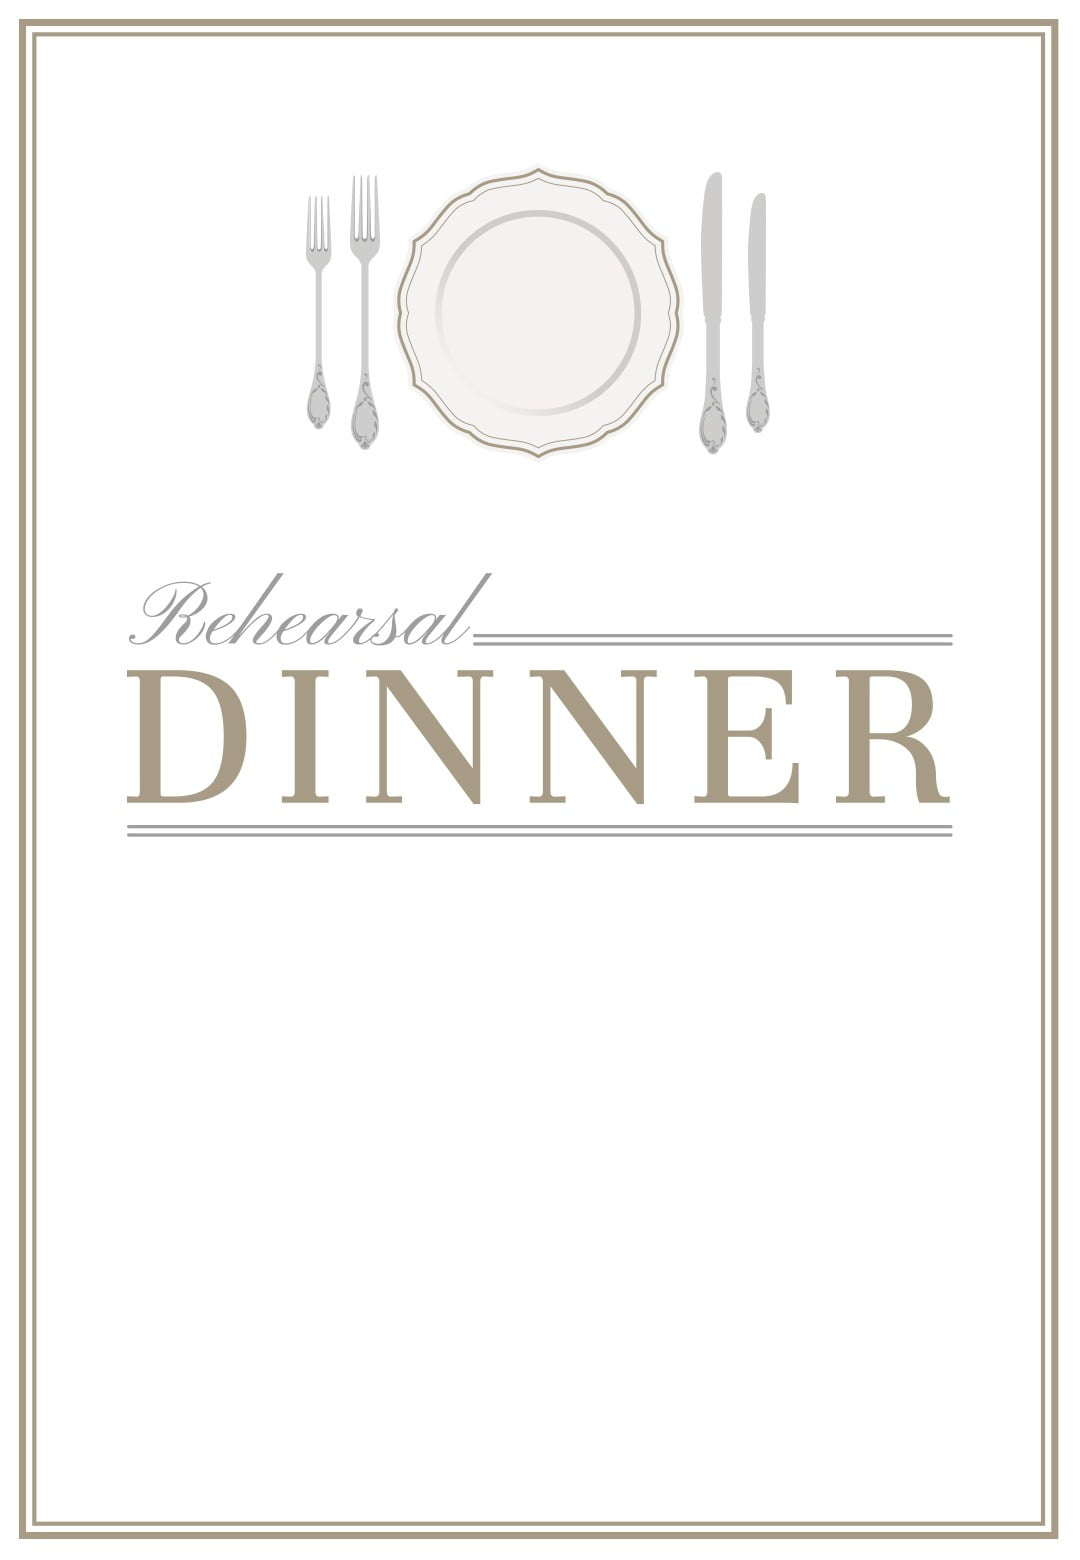 Free Printable Dinner Party Invitations Fancy Free Dinner Party